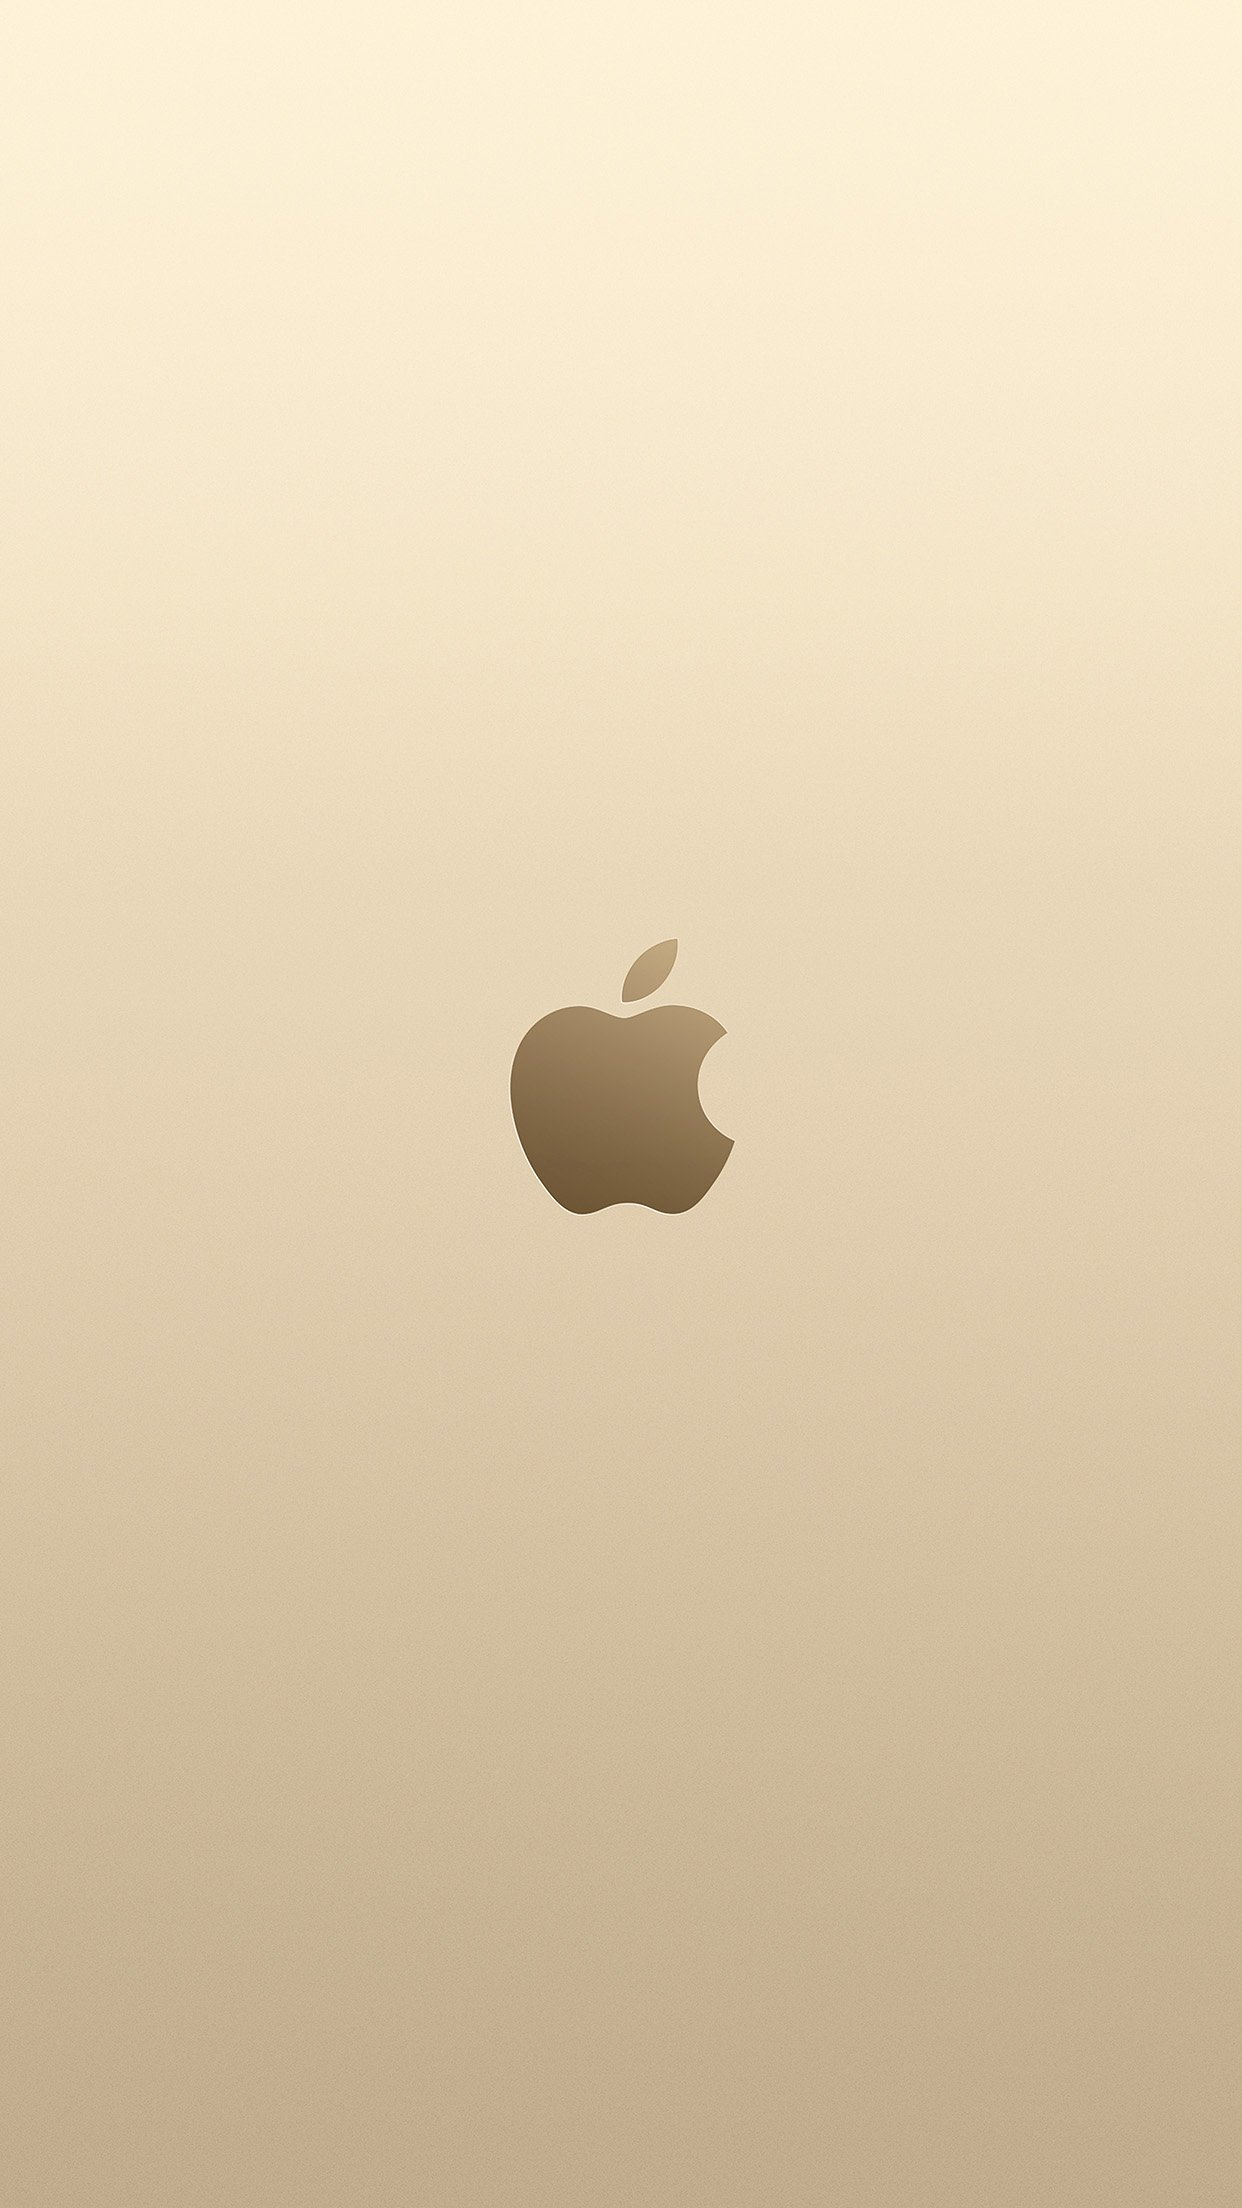 Iphone 6 Wallpaper Logo Wallpapers Of The Week Gold Inspiration